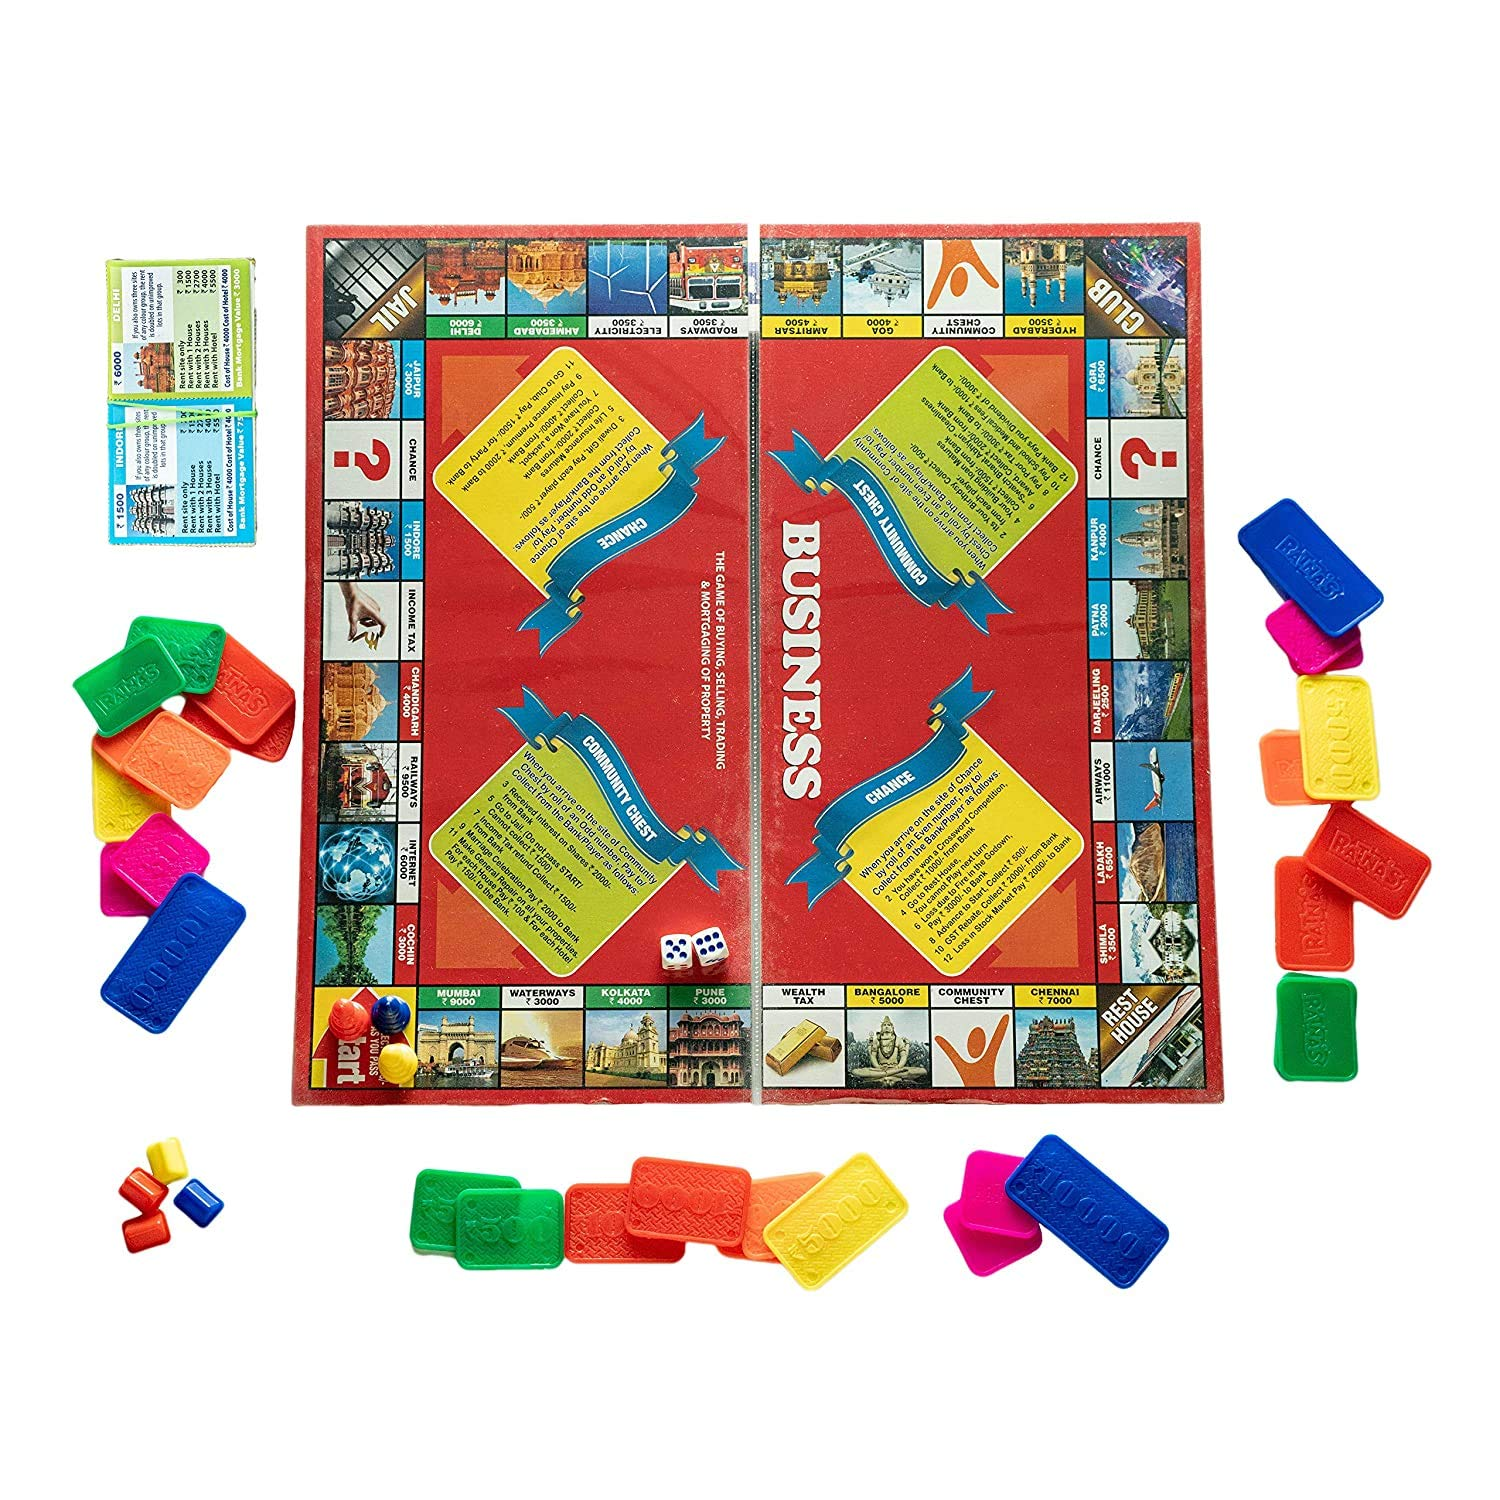 Prospo Deluxe Business World, Board Game for Kids, Best Birthday Gift for Kids, Money and Assets Board Game